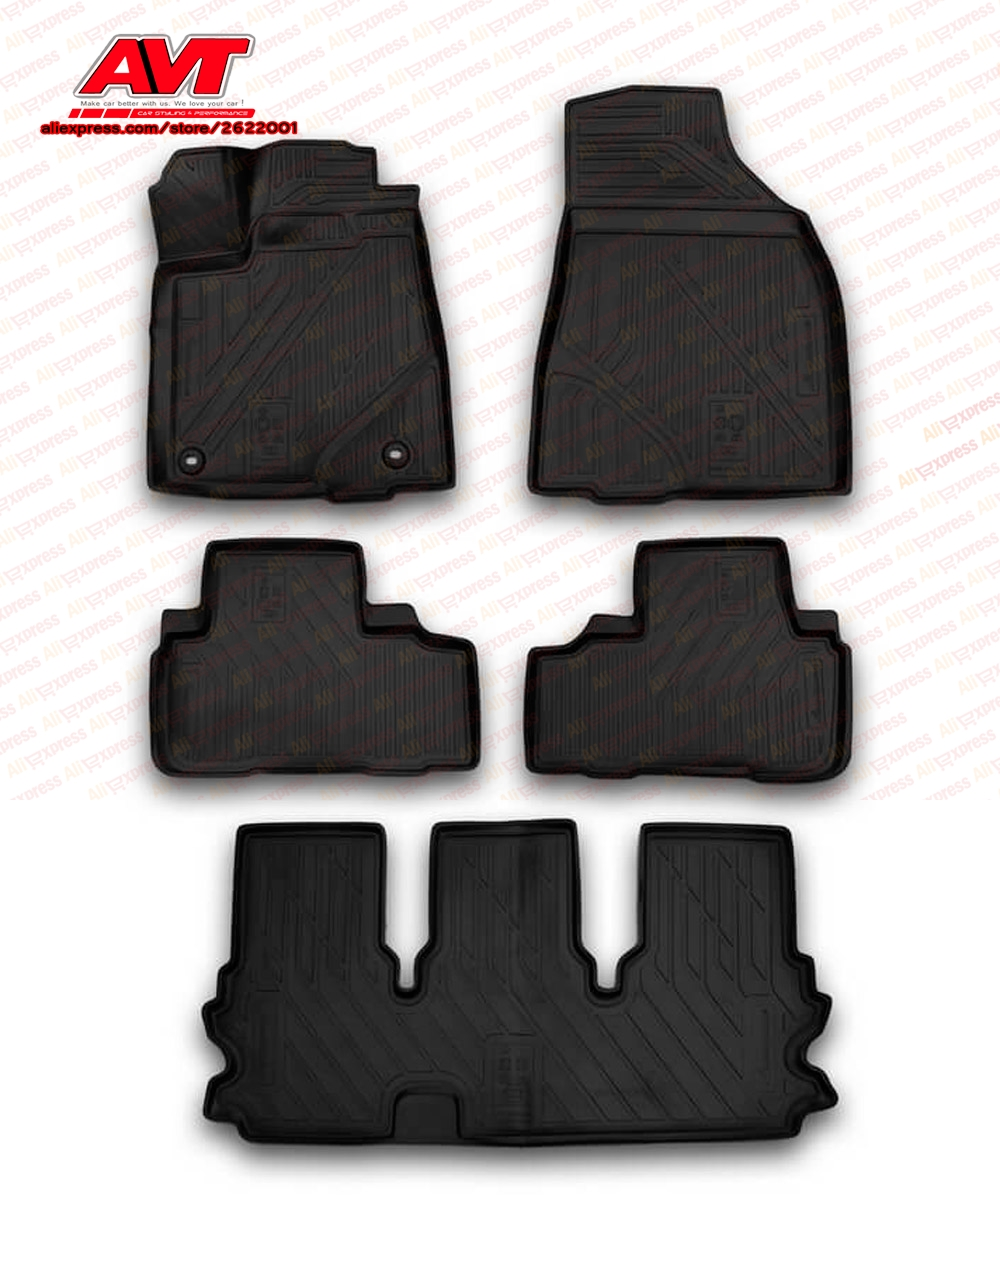 Floor mats for Toyota Highlander 2014- 5 pcs rubber rugs non slip rubber interior car styling accessories